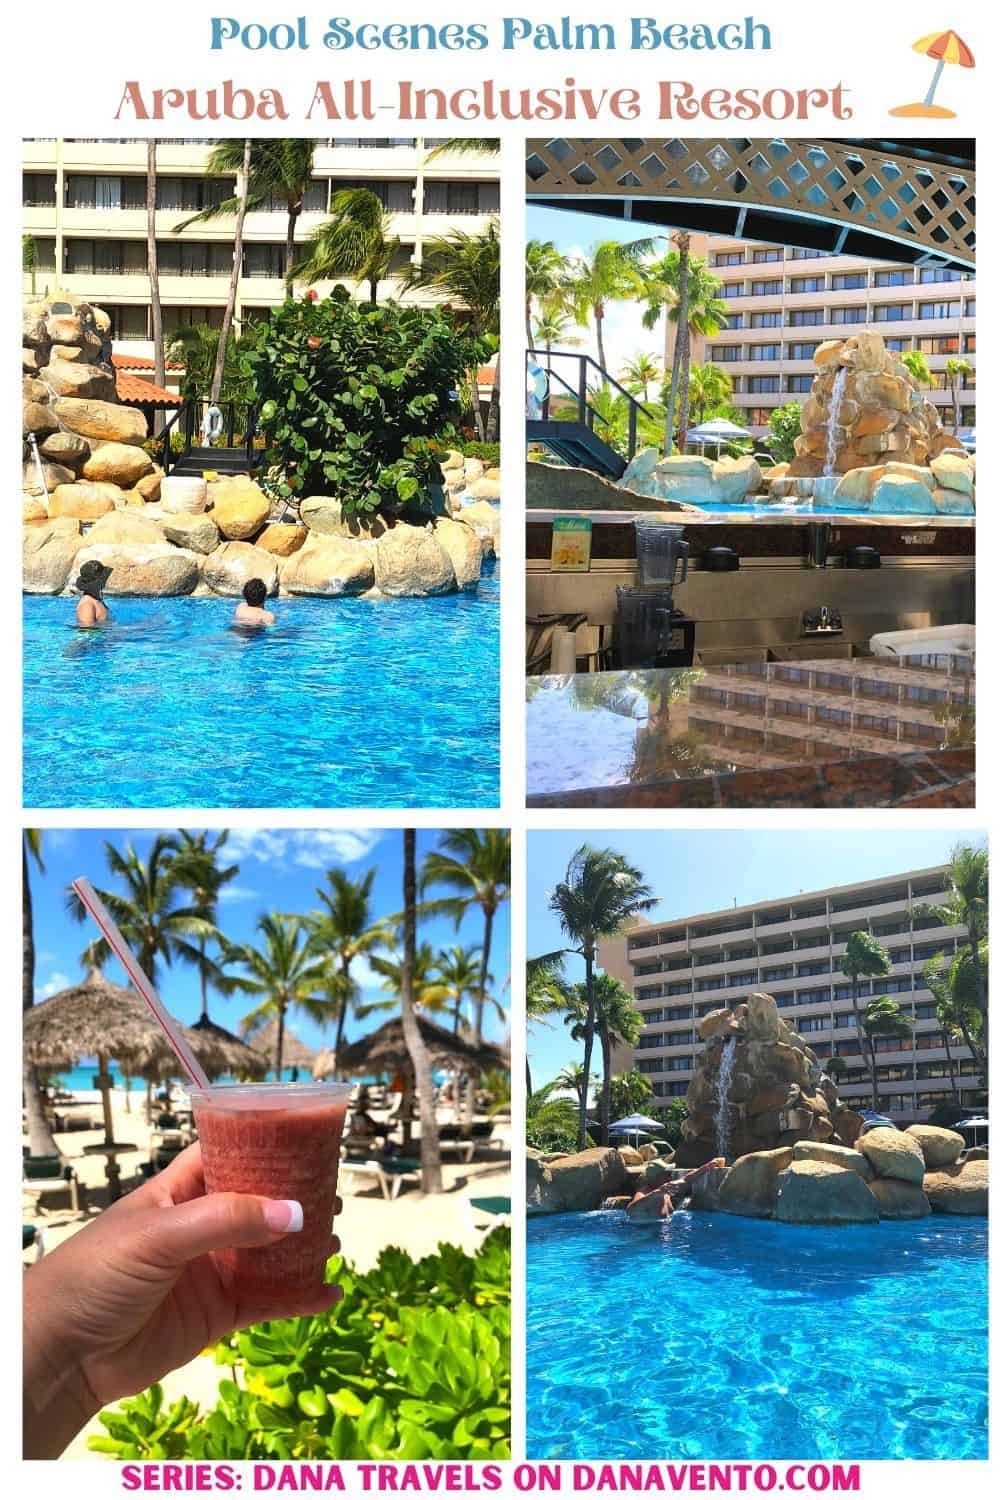 Pool Scenes at All Inclusive Aruba Resort on Palm Beach: Affordable & Luxurious